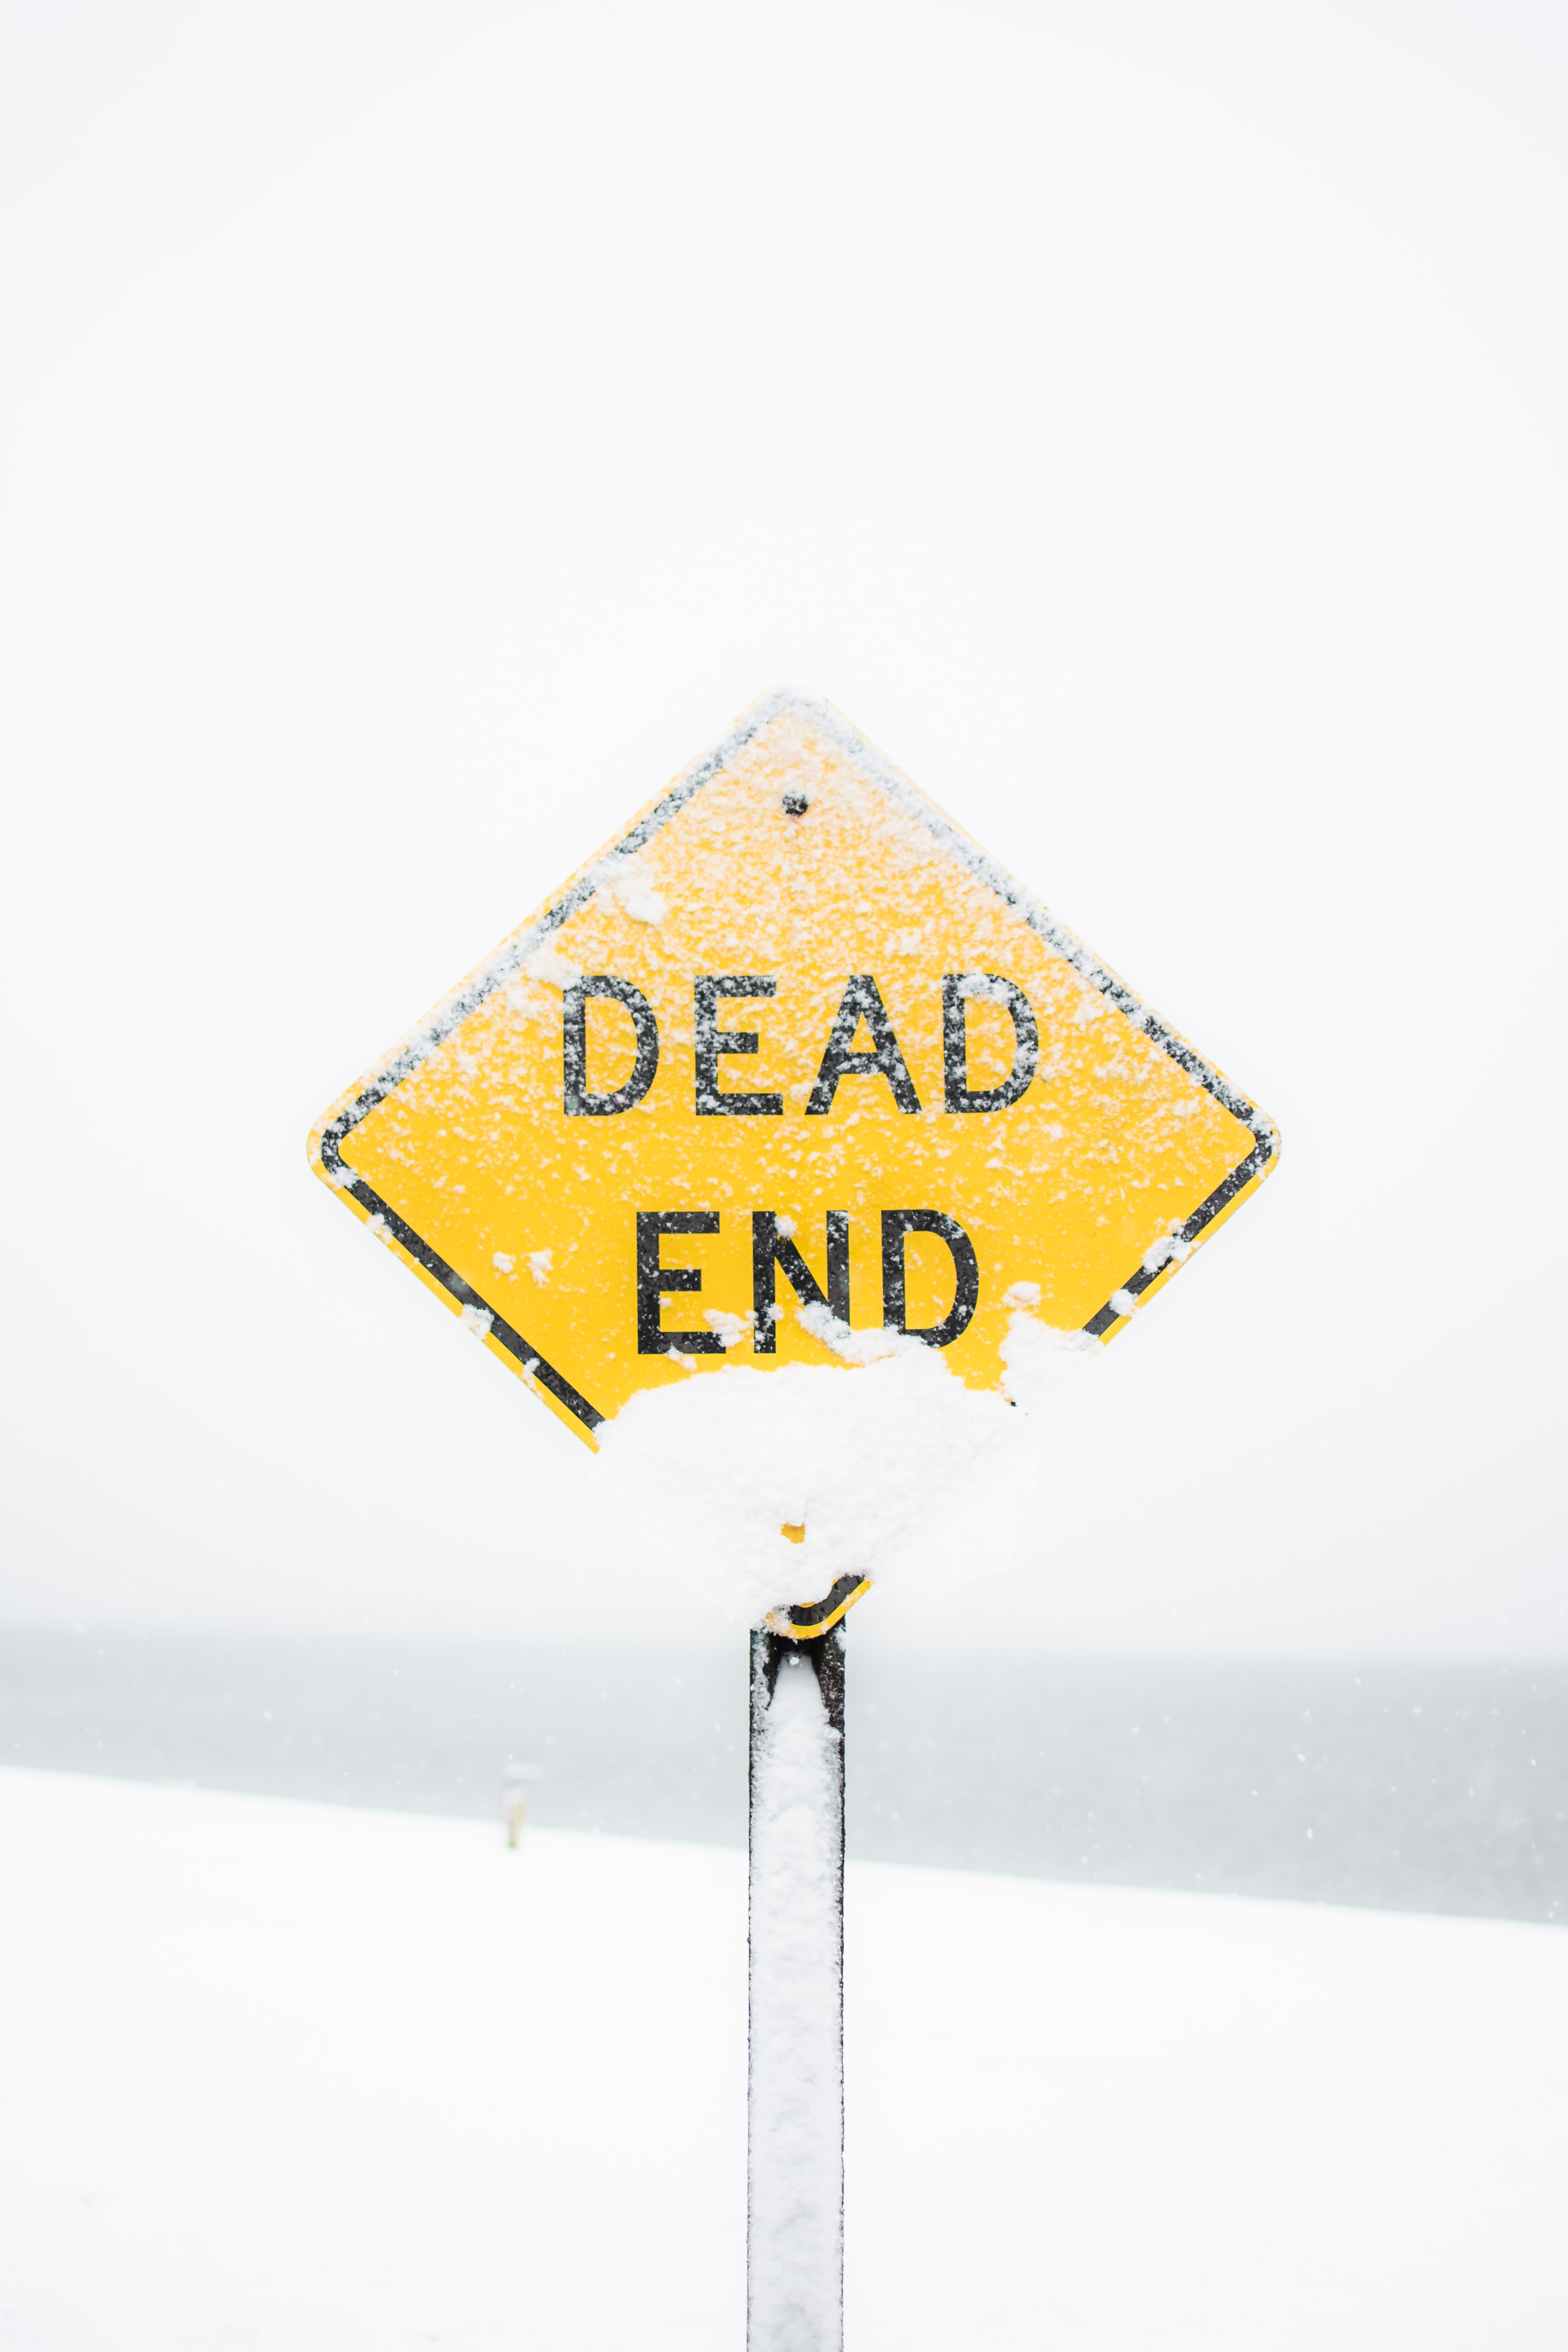 a dead end sign in snow